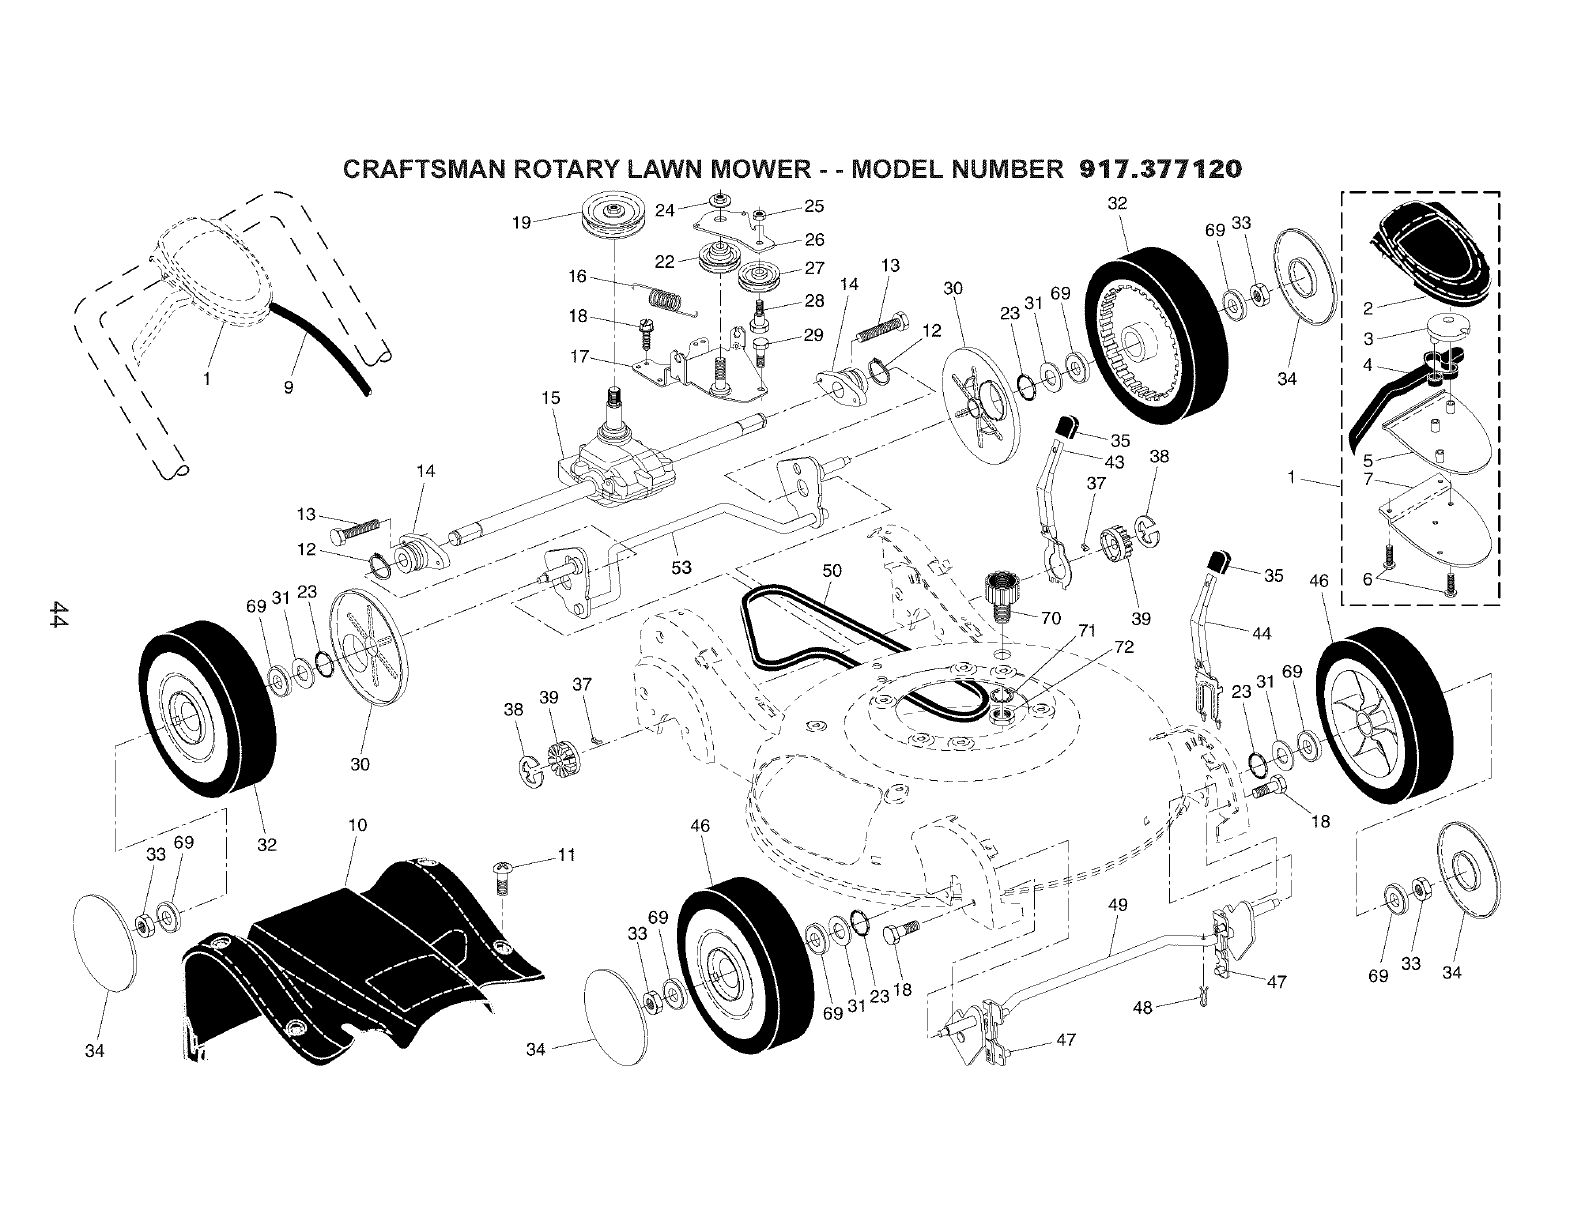 Page 44 of Craftsman Lawn Mower 917.37712 User Guide